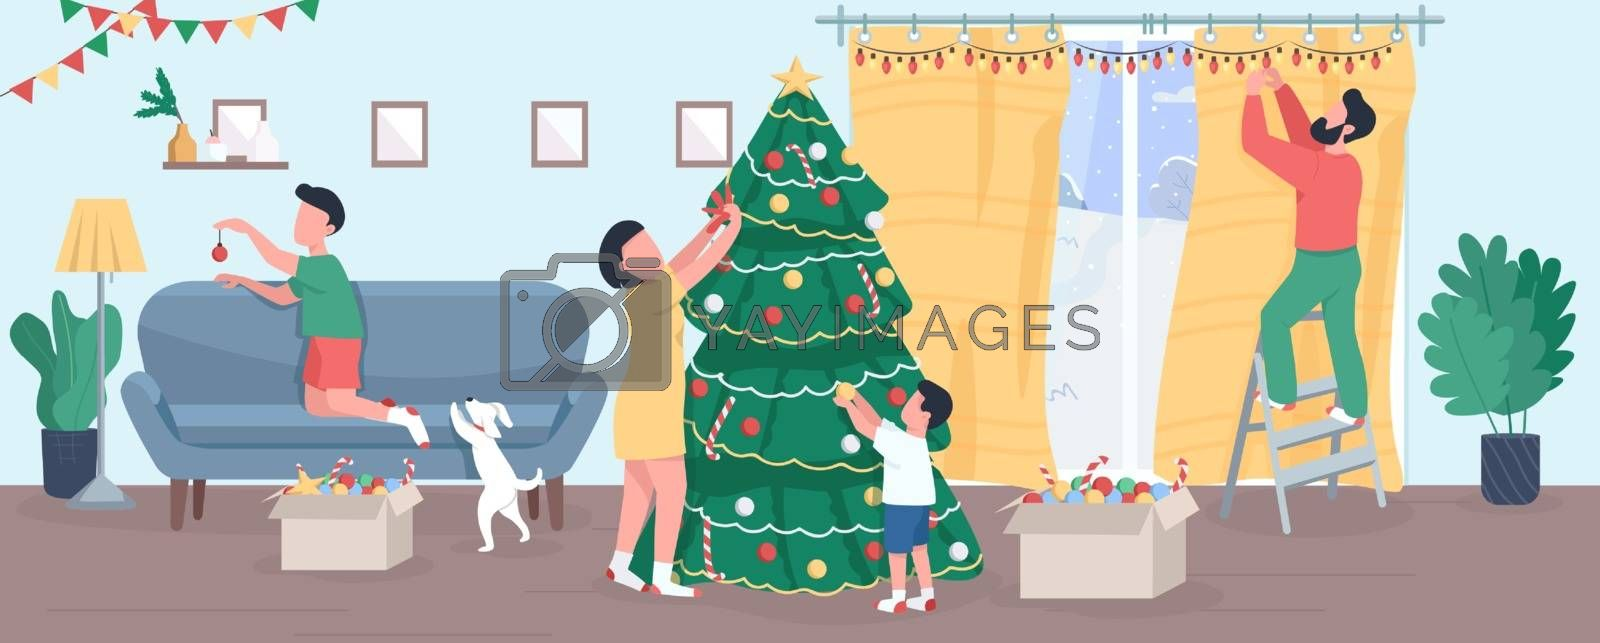 Family decorate Christmas tree semi flat vector illustration by ntl